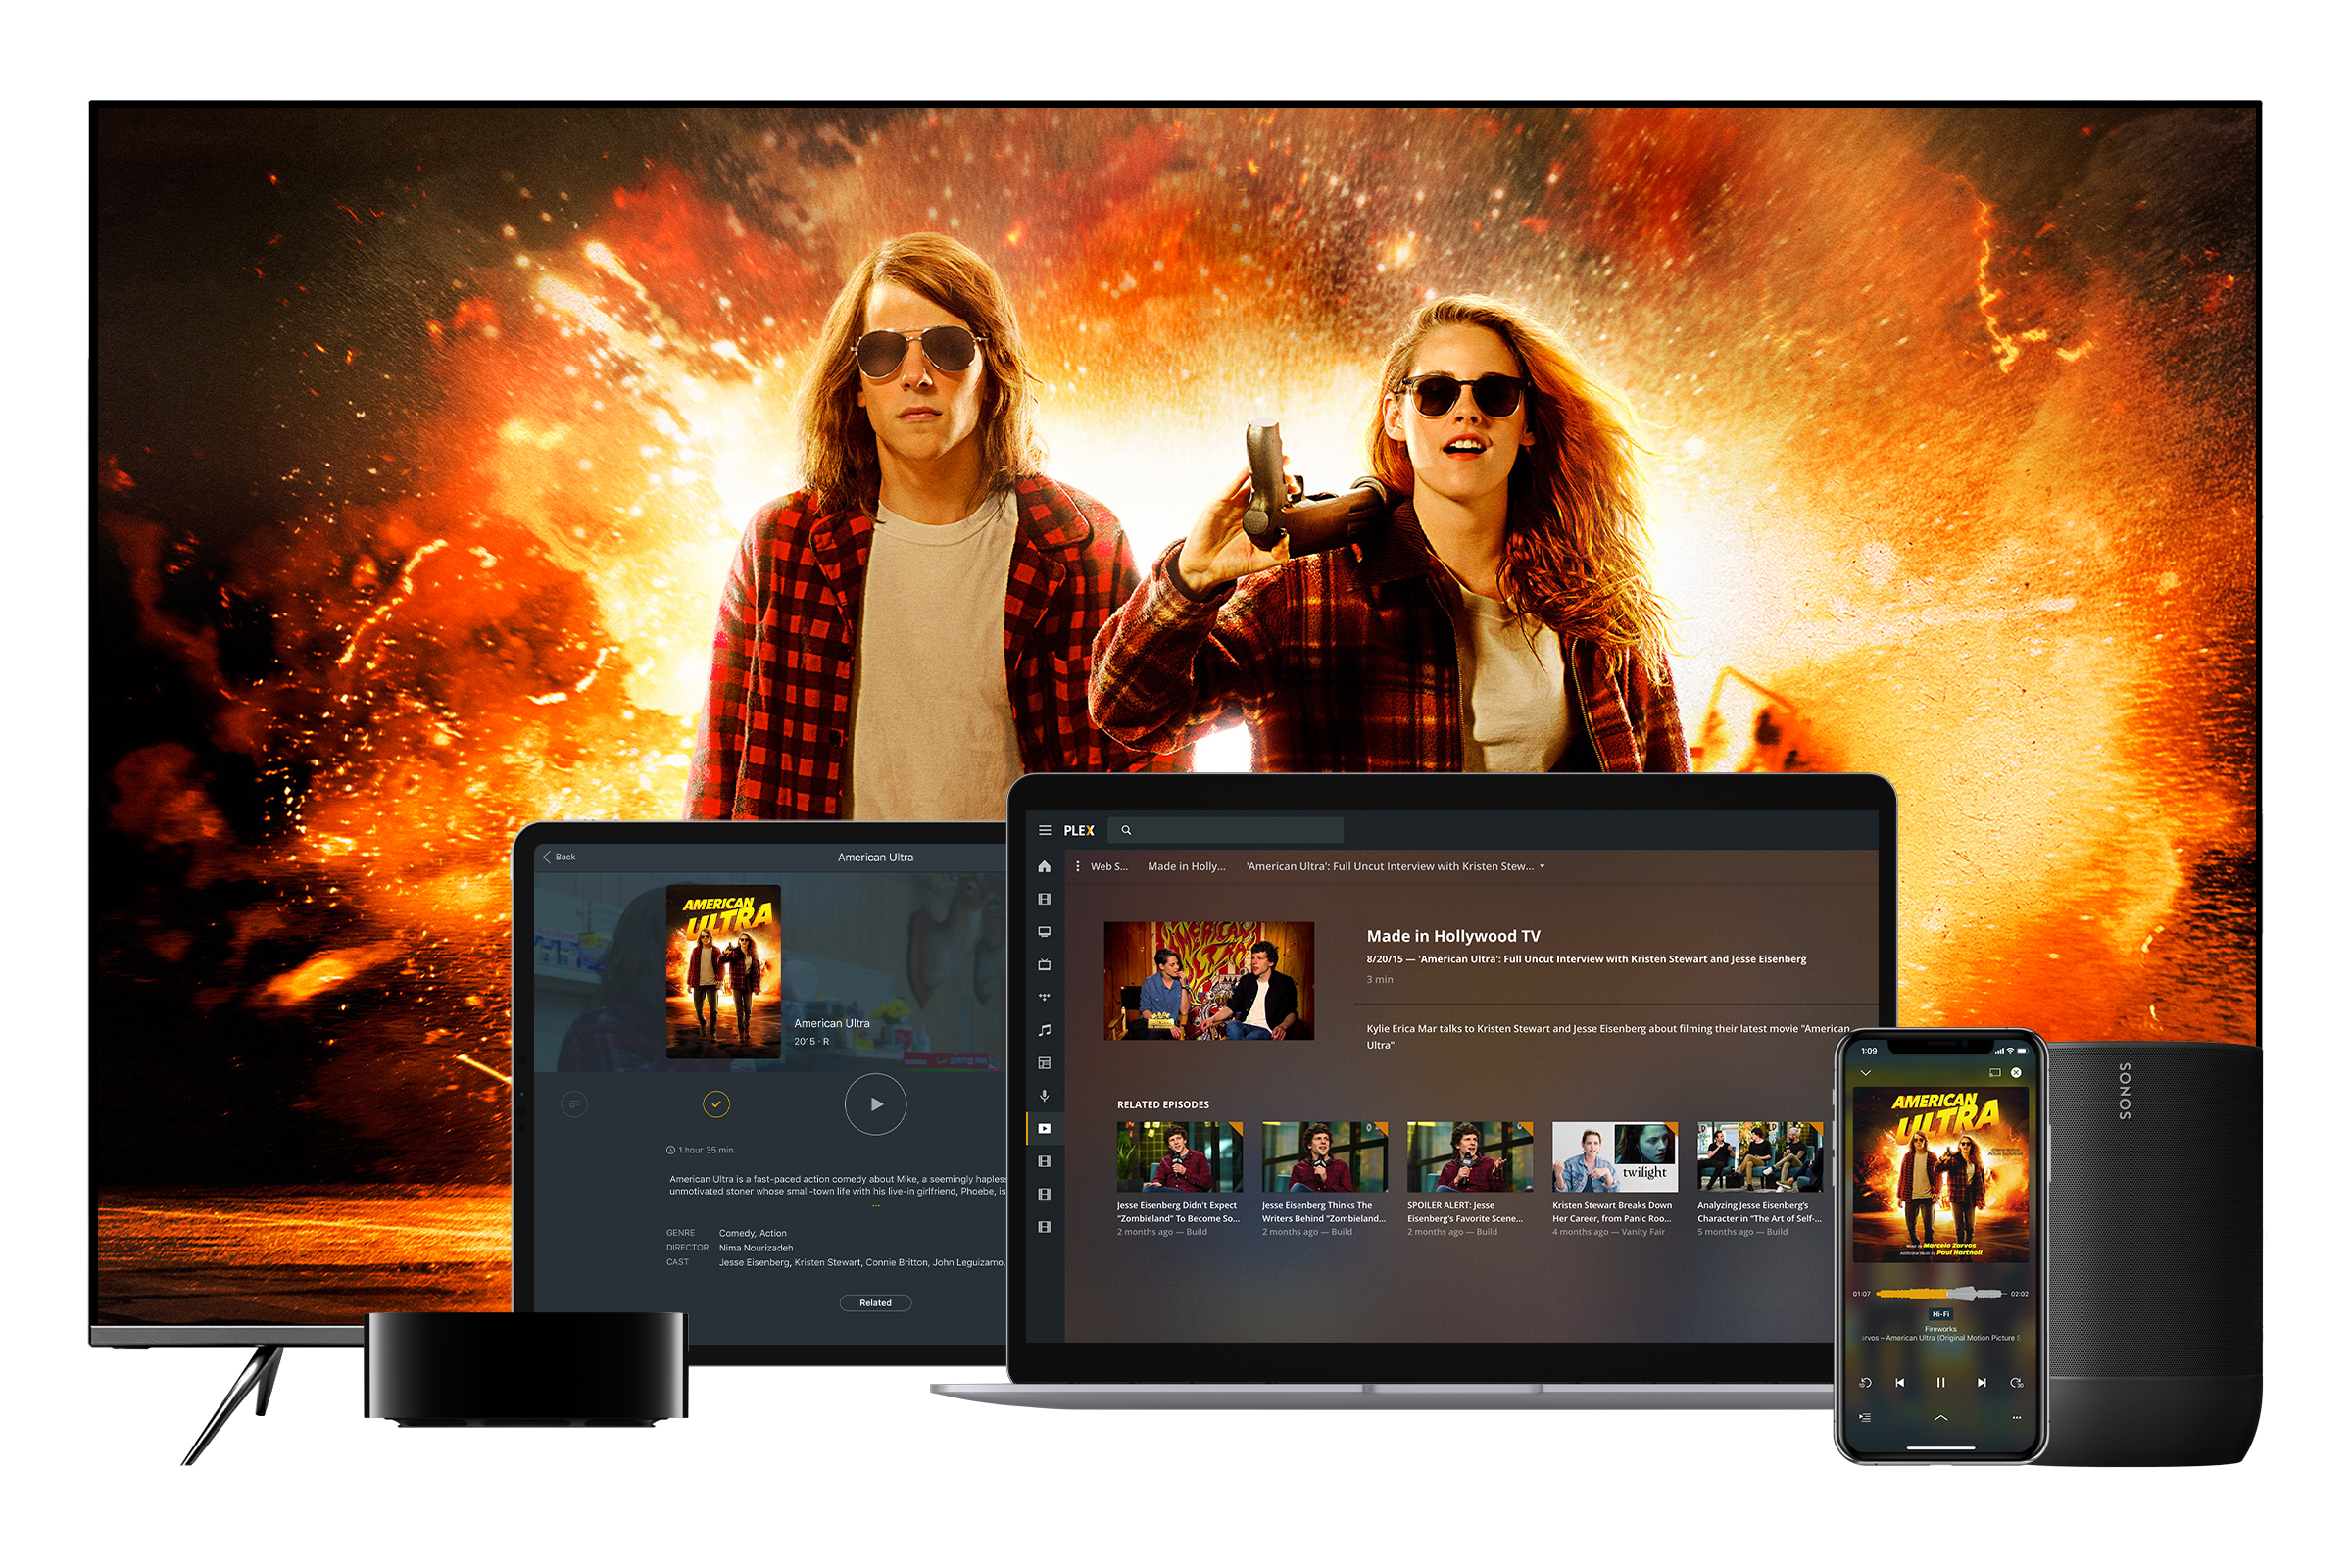 Plex launches free, ad-supported movie and TV show streaming